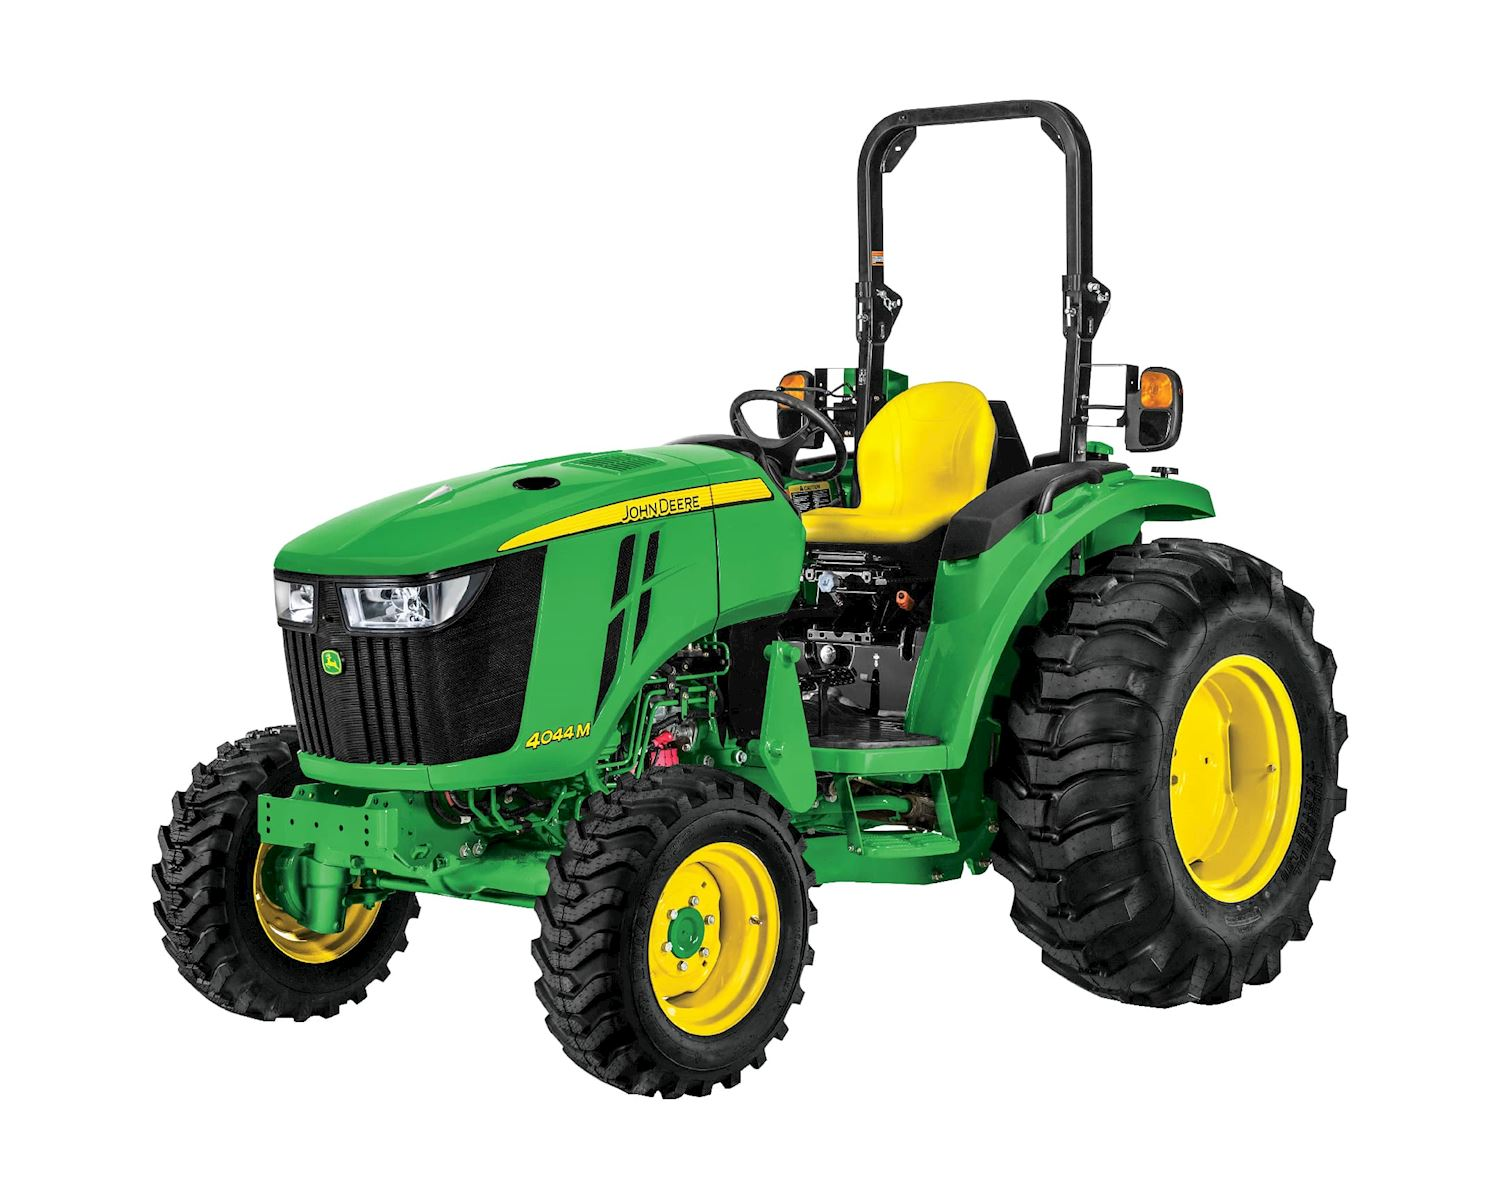 4 series john deere compact tractor for sale